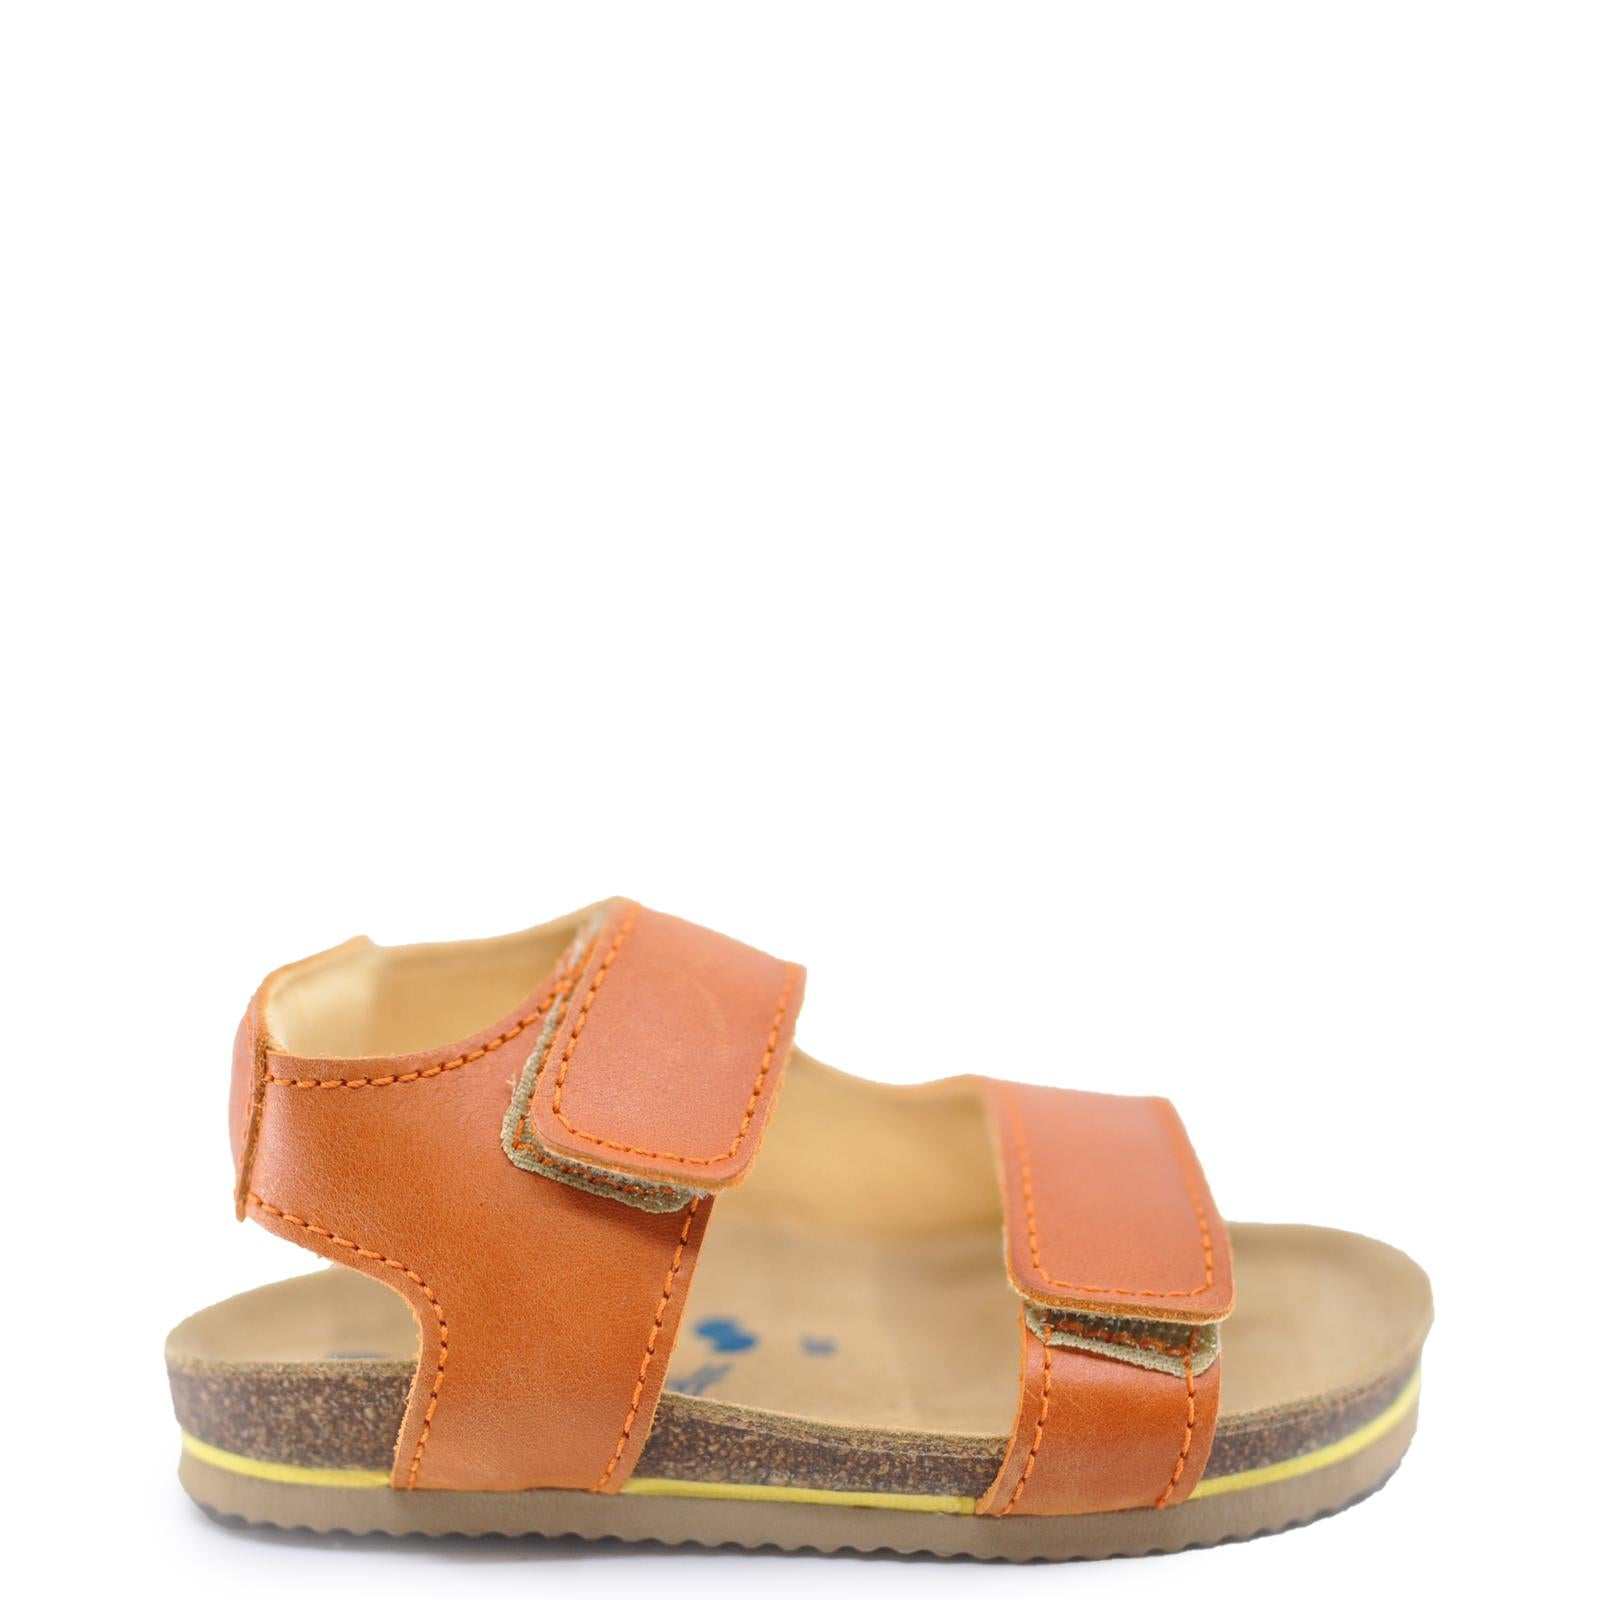 Dulis Cognac Velcro Sandal-Tassel Children Shoes